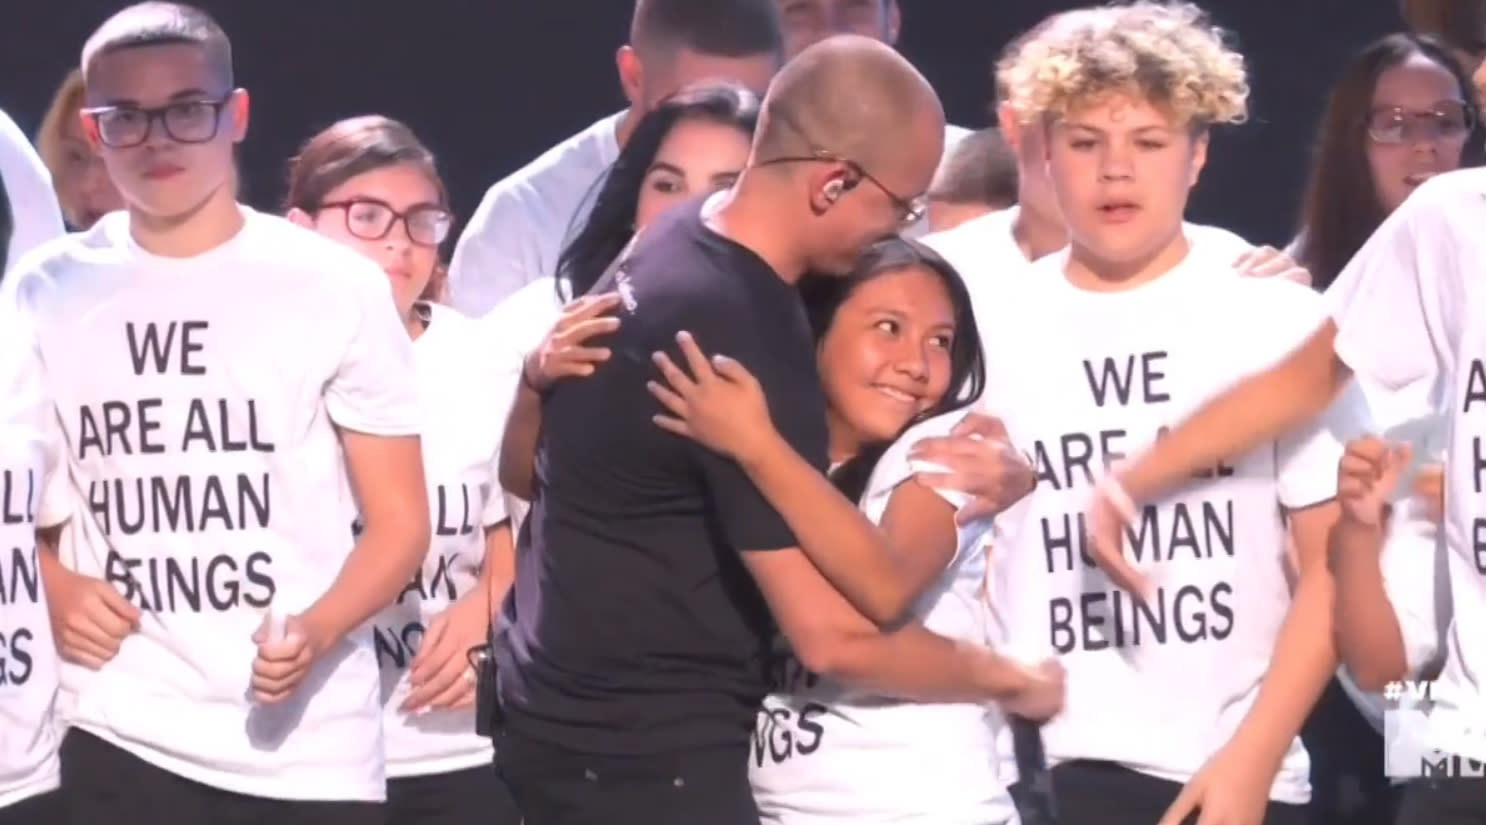 Logic, immigrant families protest Trump's policies with powerful VMAs  performance